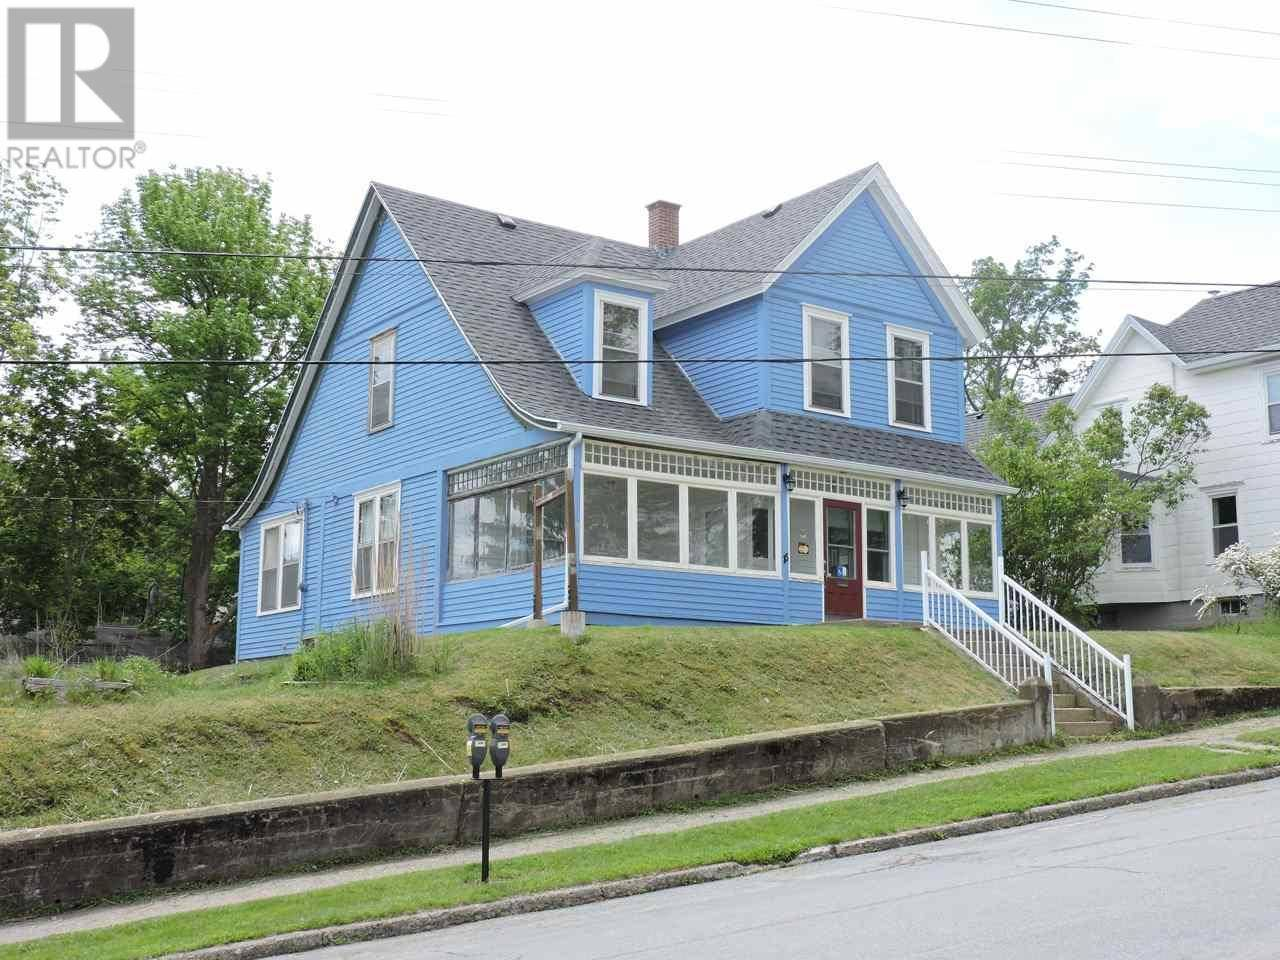 Residential property for sale at 15 Empire St Bridgewater Nova Scotia - MLS: 201914731